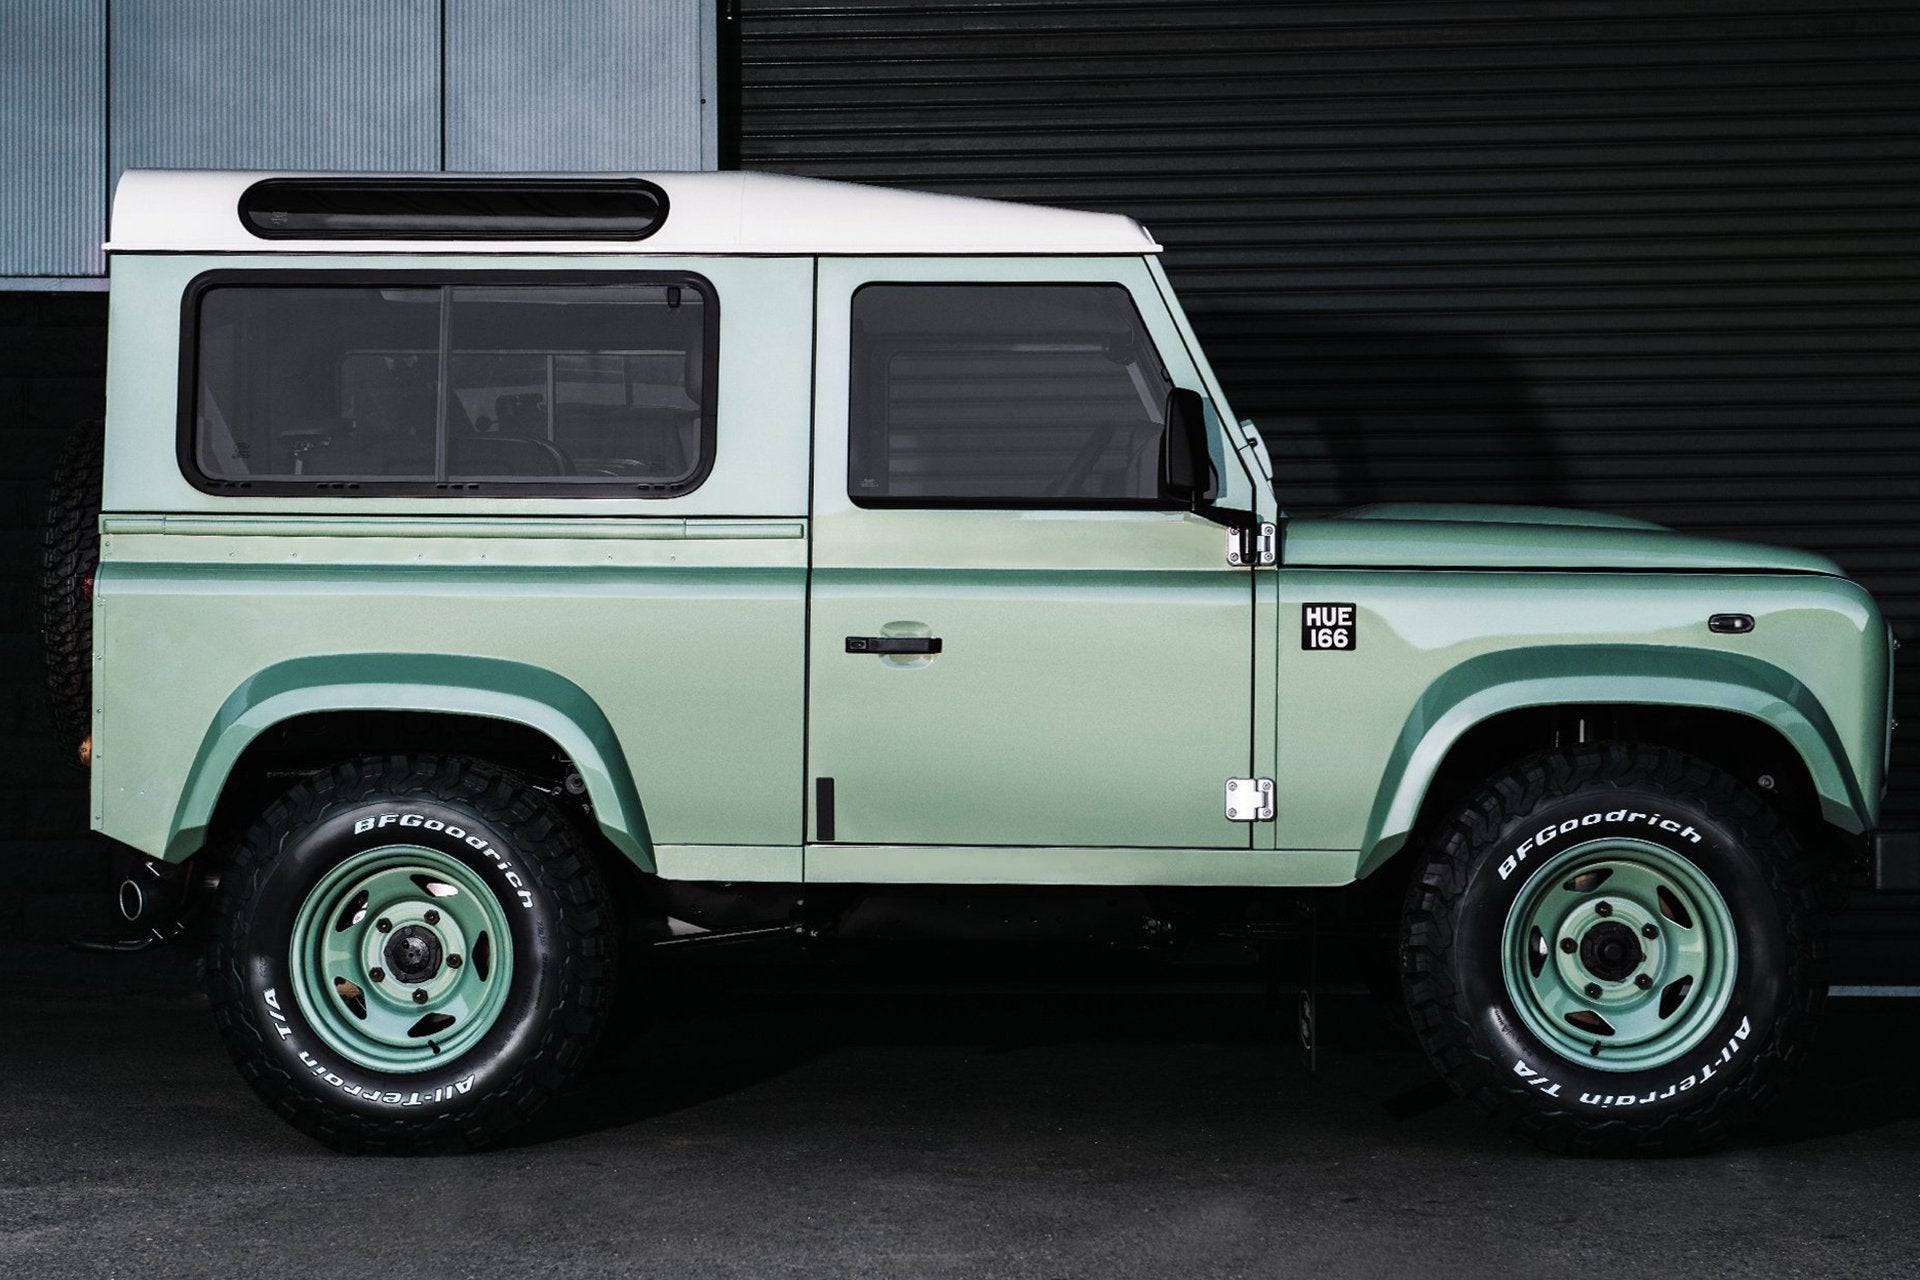 Land Rover Defender 90 (1991-2016) Wide Forest Wheel Arches by Chelsea Truck Company - Image 2694